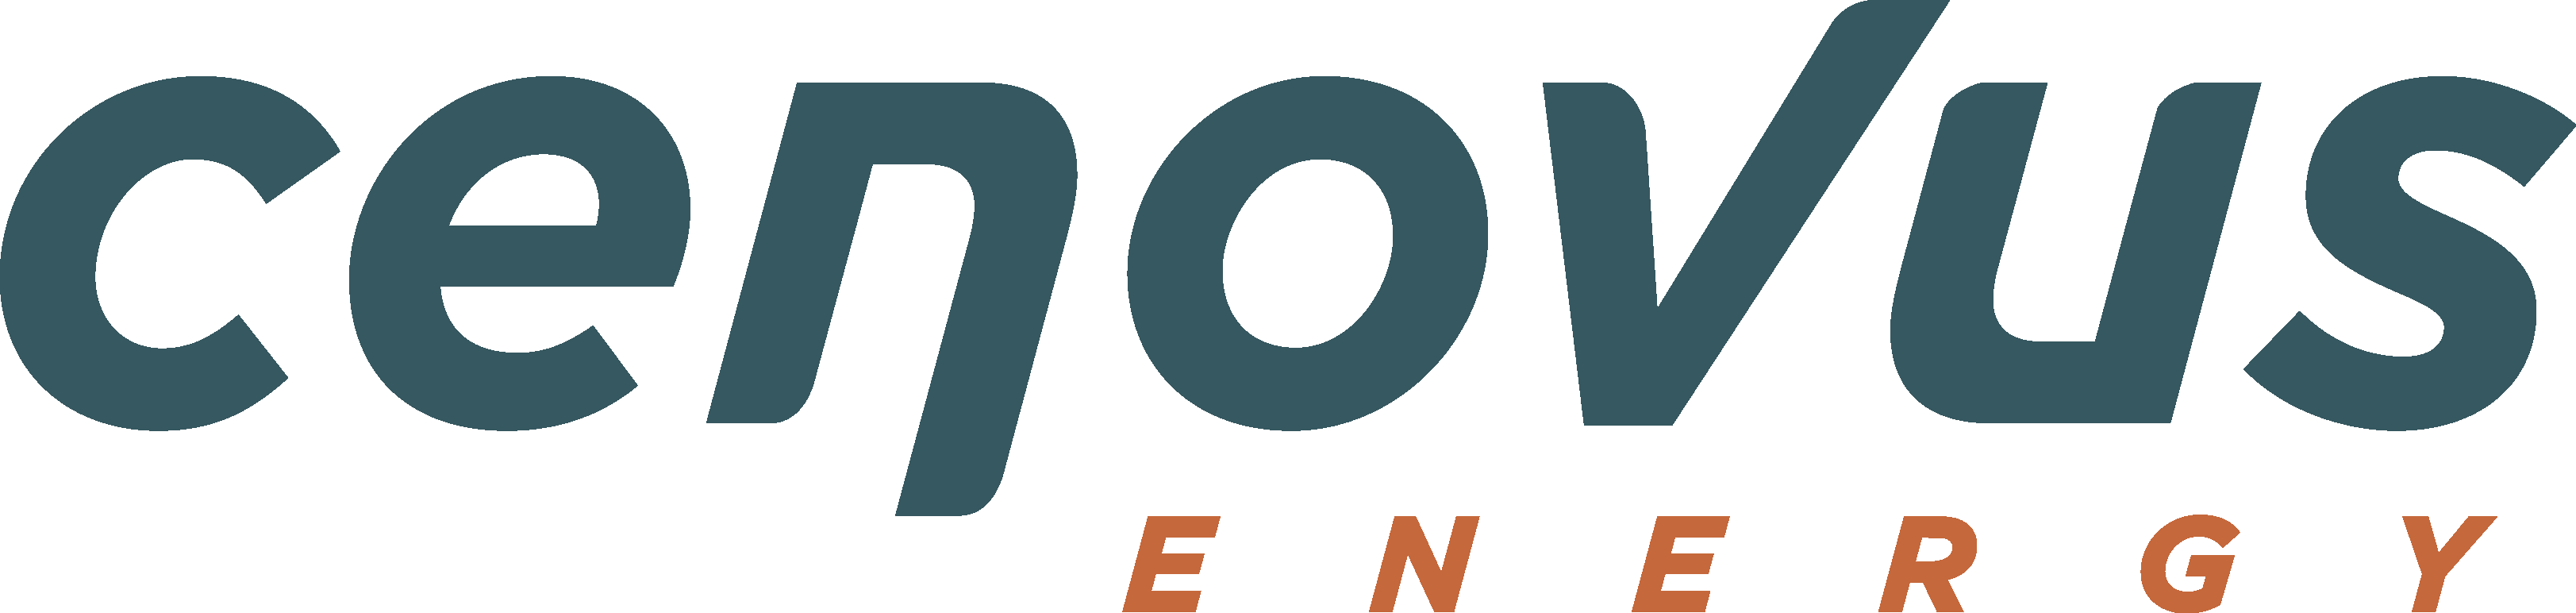 Cenovus Energy (formerly Husky Energy)